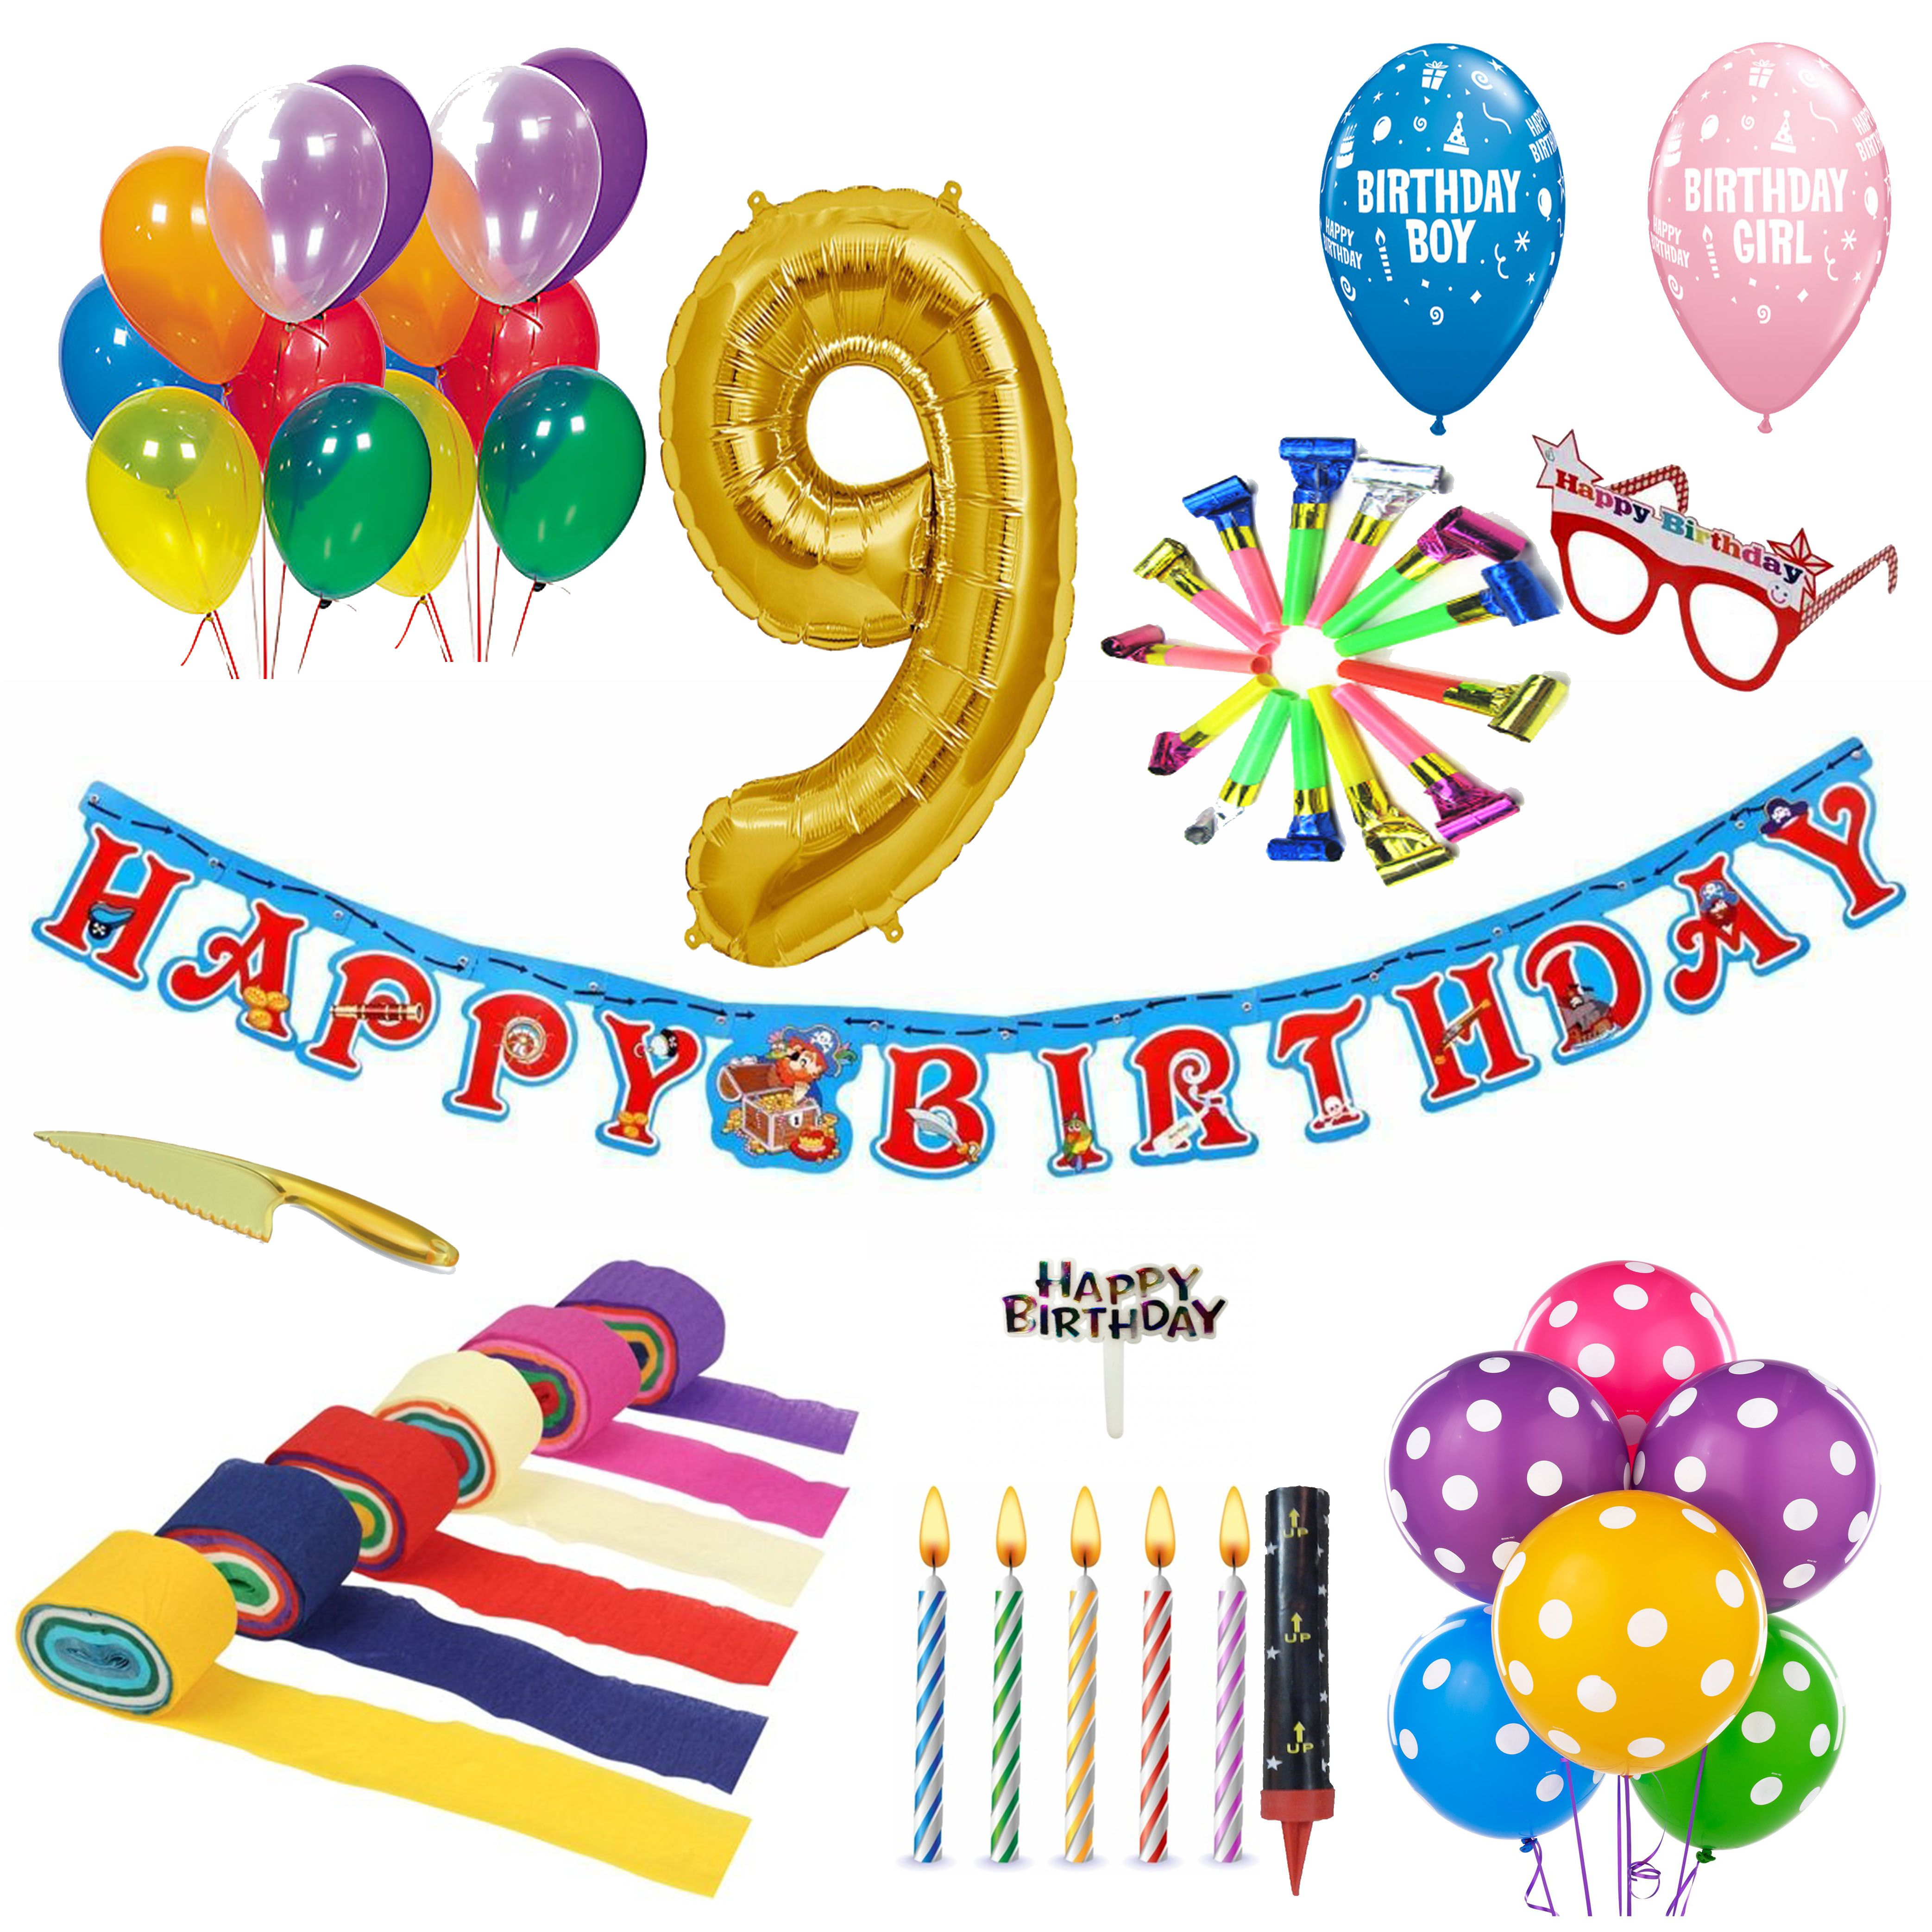 9th birthday balloons clipart image download 9th Birthday Decoration Kit image download